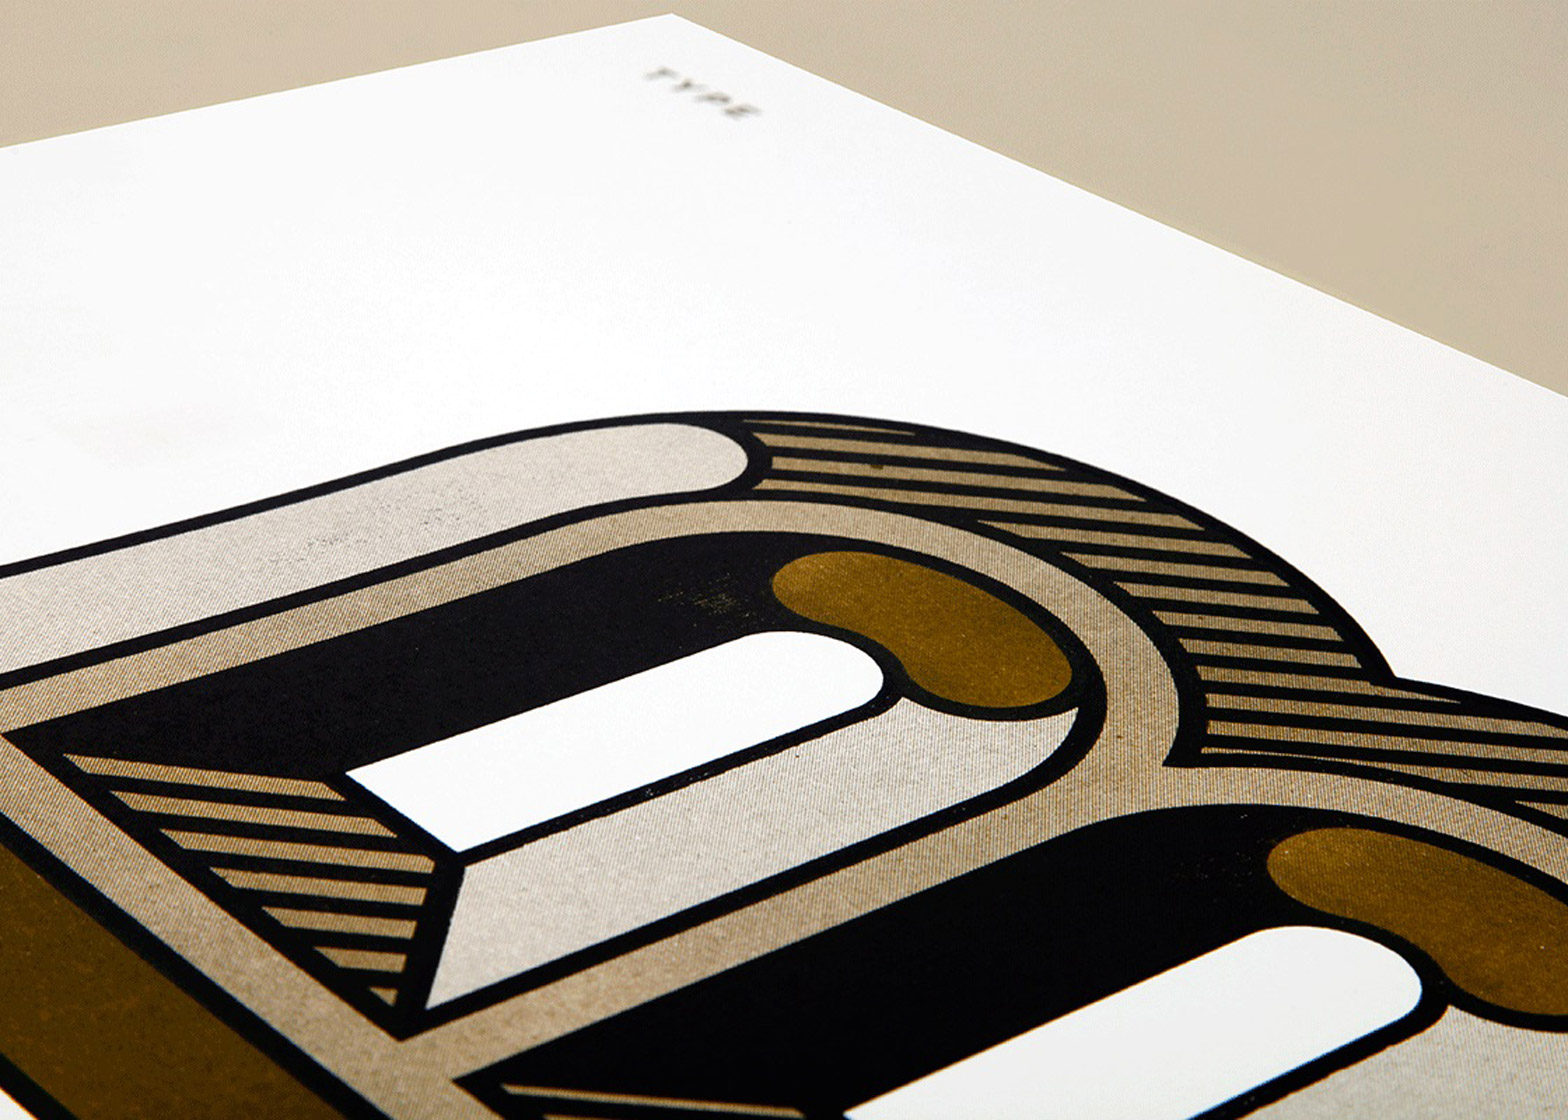 Letterpress by Corin Kennington